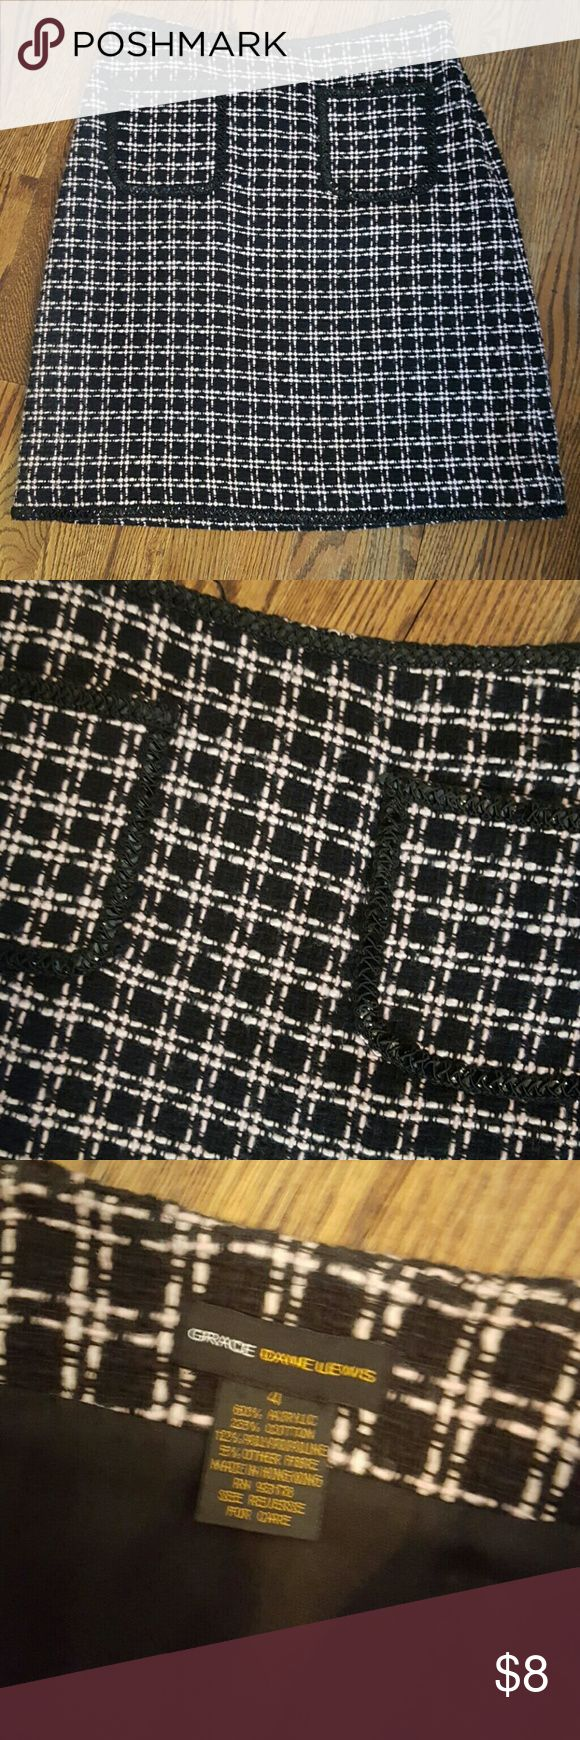 Wool like knit mini skirt acrylic and nylon, lined. reminds me of classic Chanel. Has black sequins on hem, waist, and 2 pockets on front. Super Cute! Priced to SELL! grace dane lewis Skirts Mini